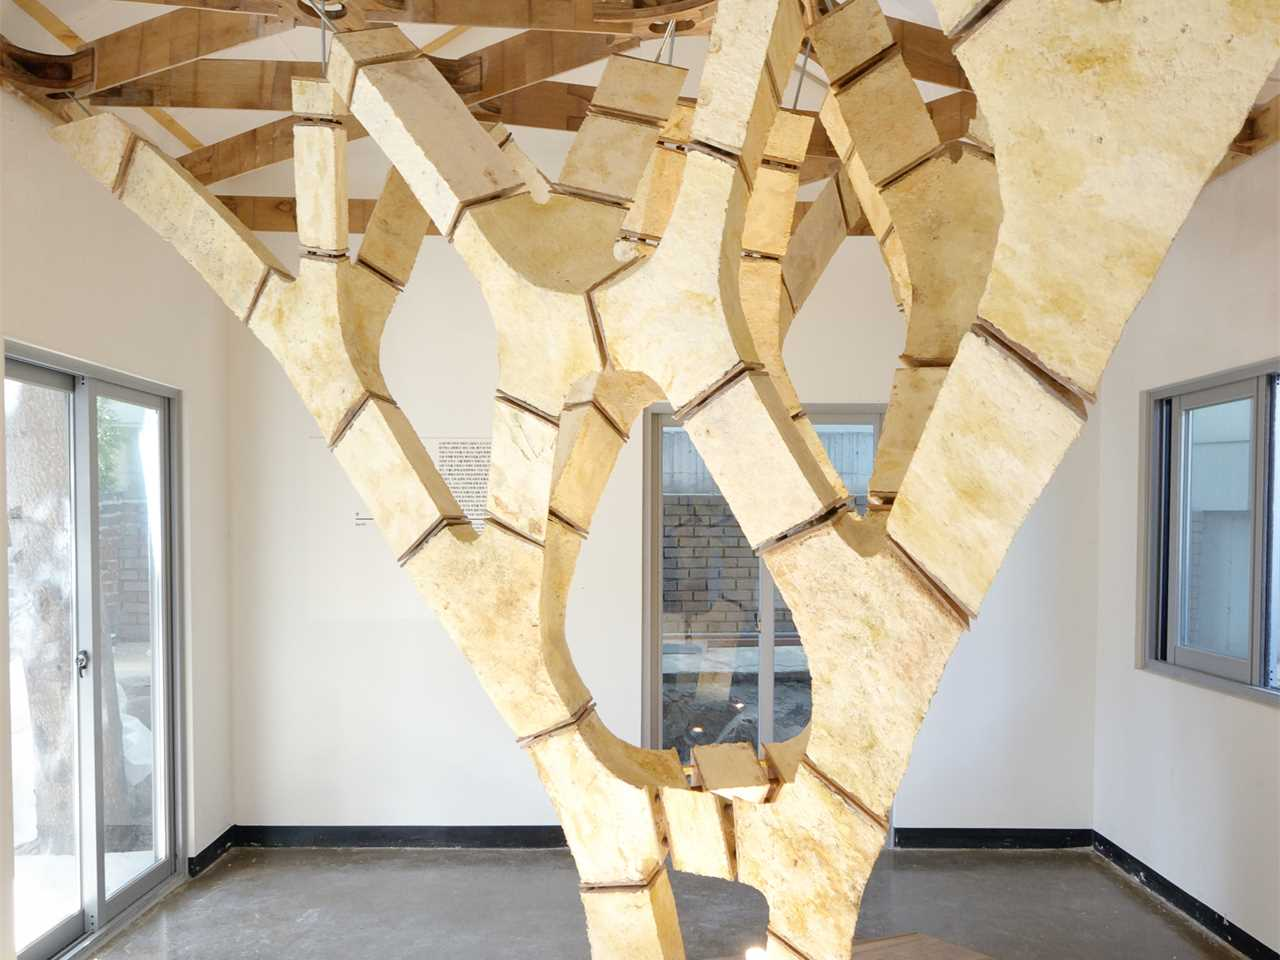 Cultivated Building Materials: The Fourth Industrial Revolution?